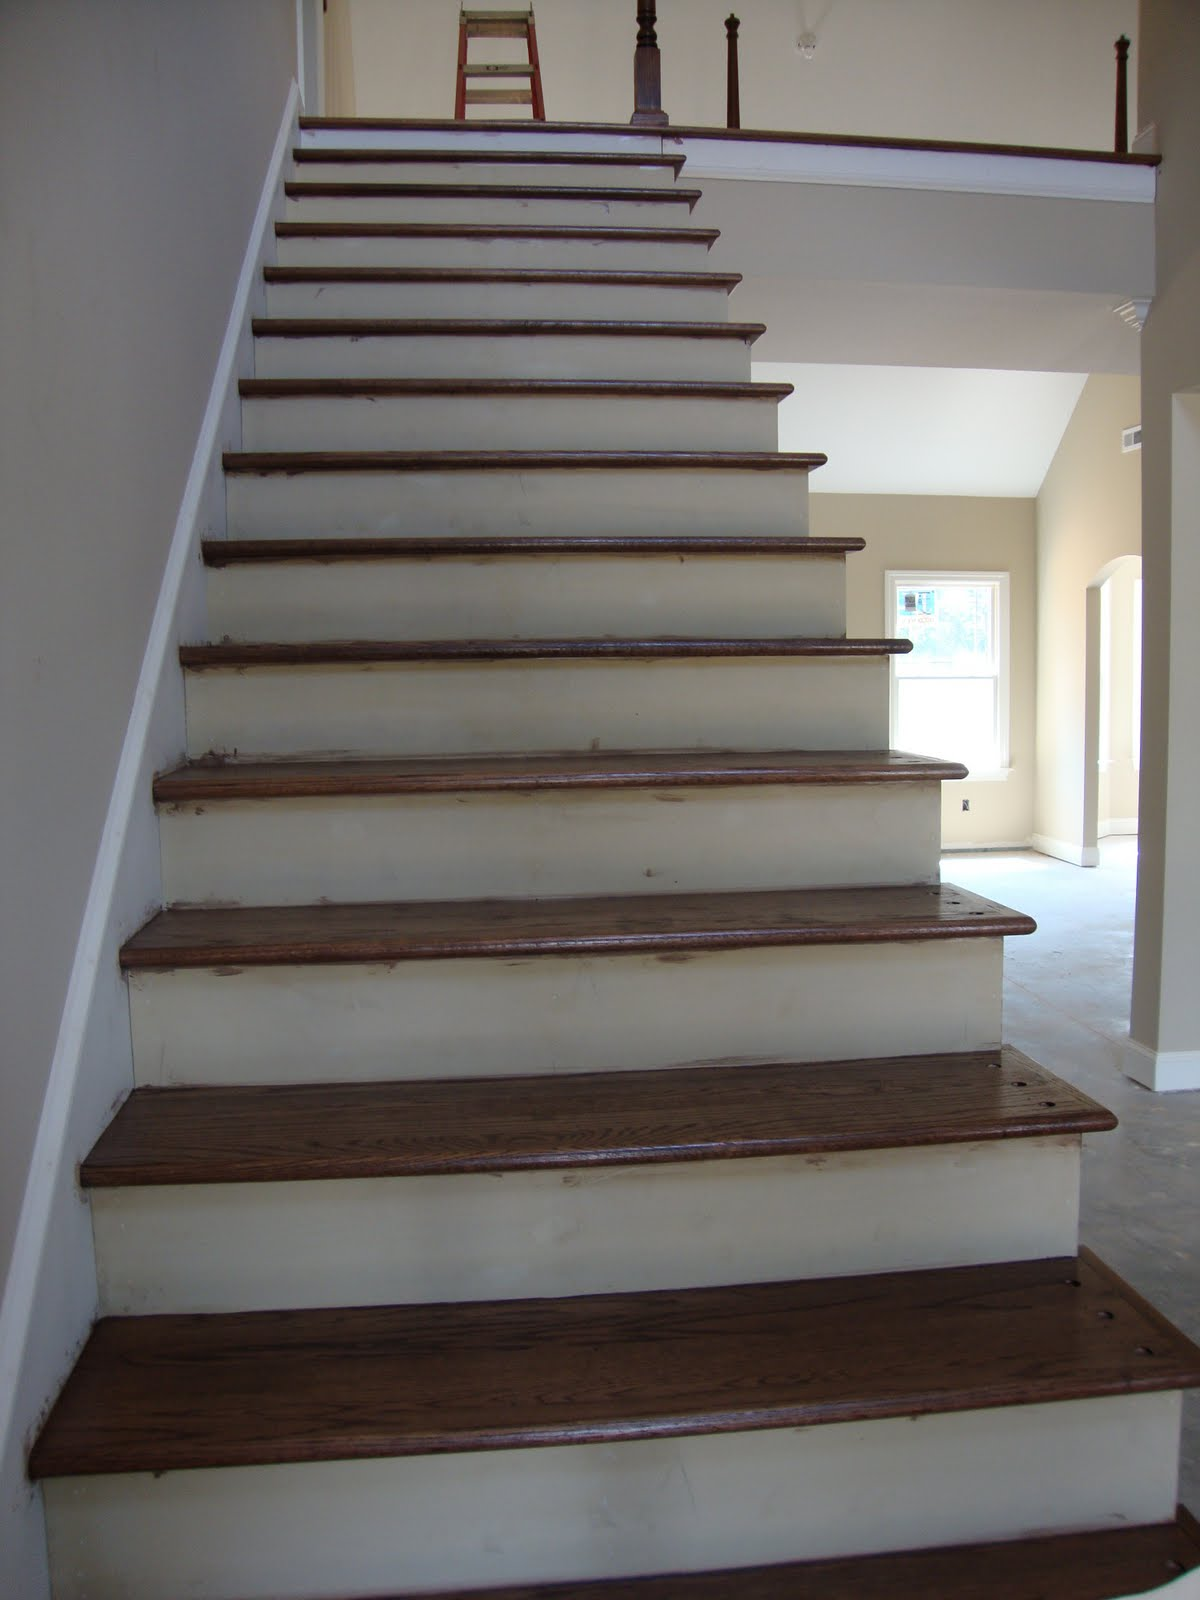 Home building project cedar columns lighting and - Interior stair treads and risers ...